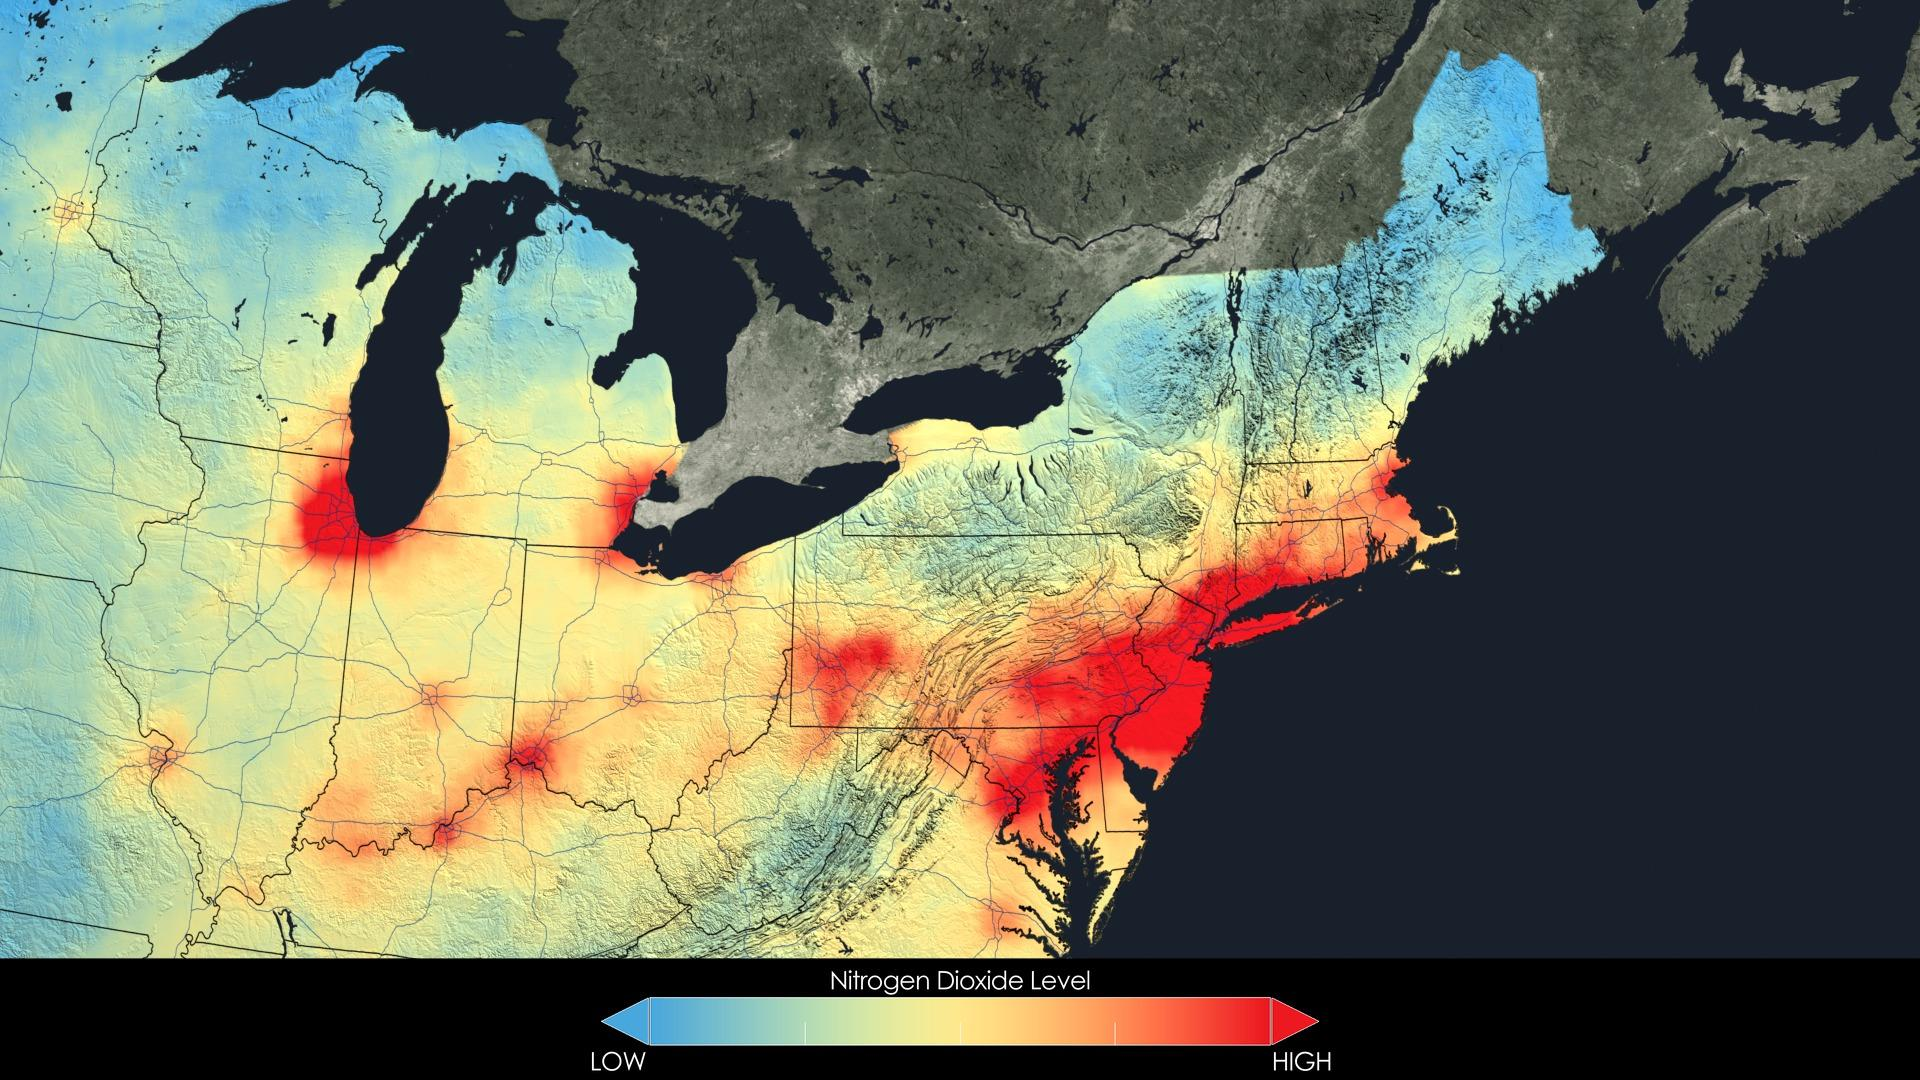 NASA scientists track air pollution from space | Michigan ...